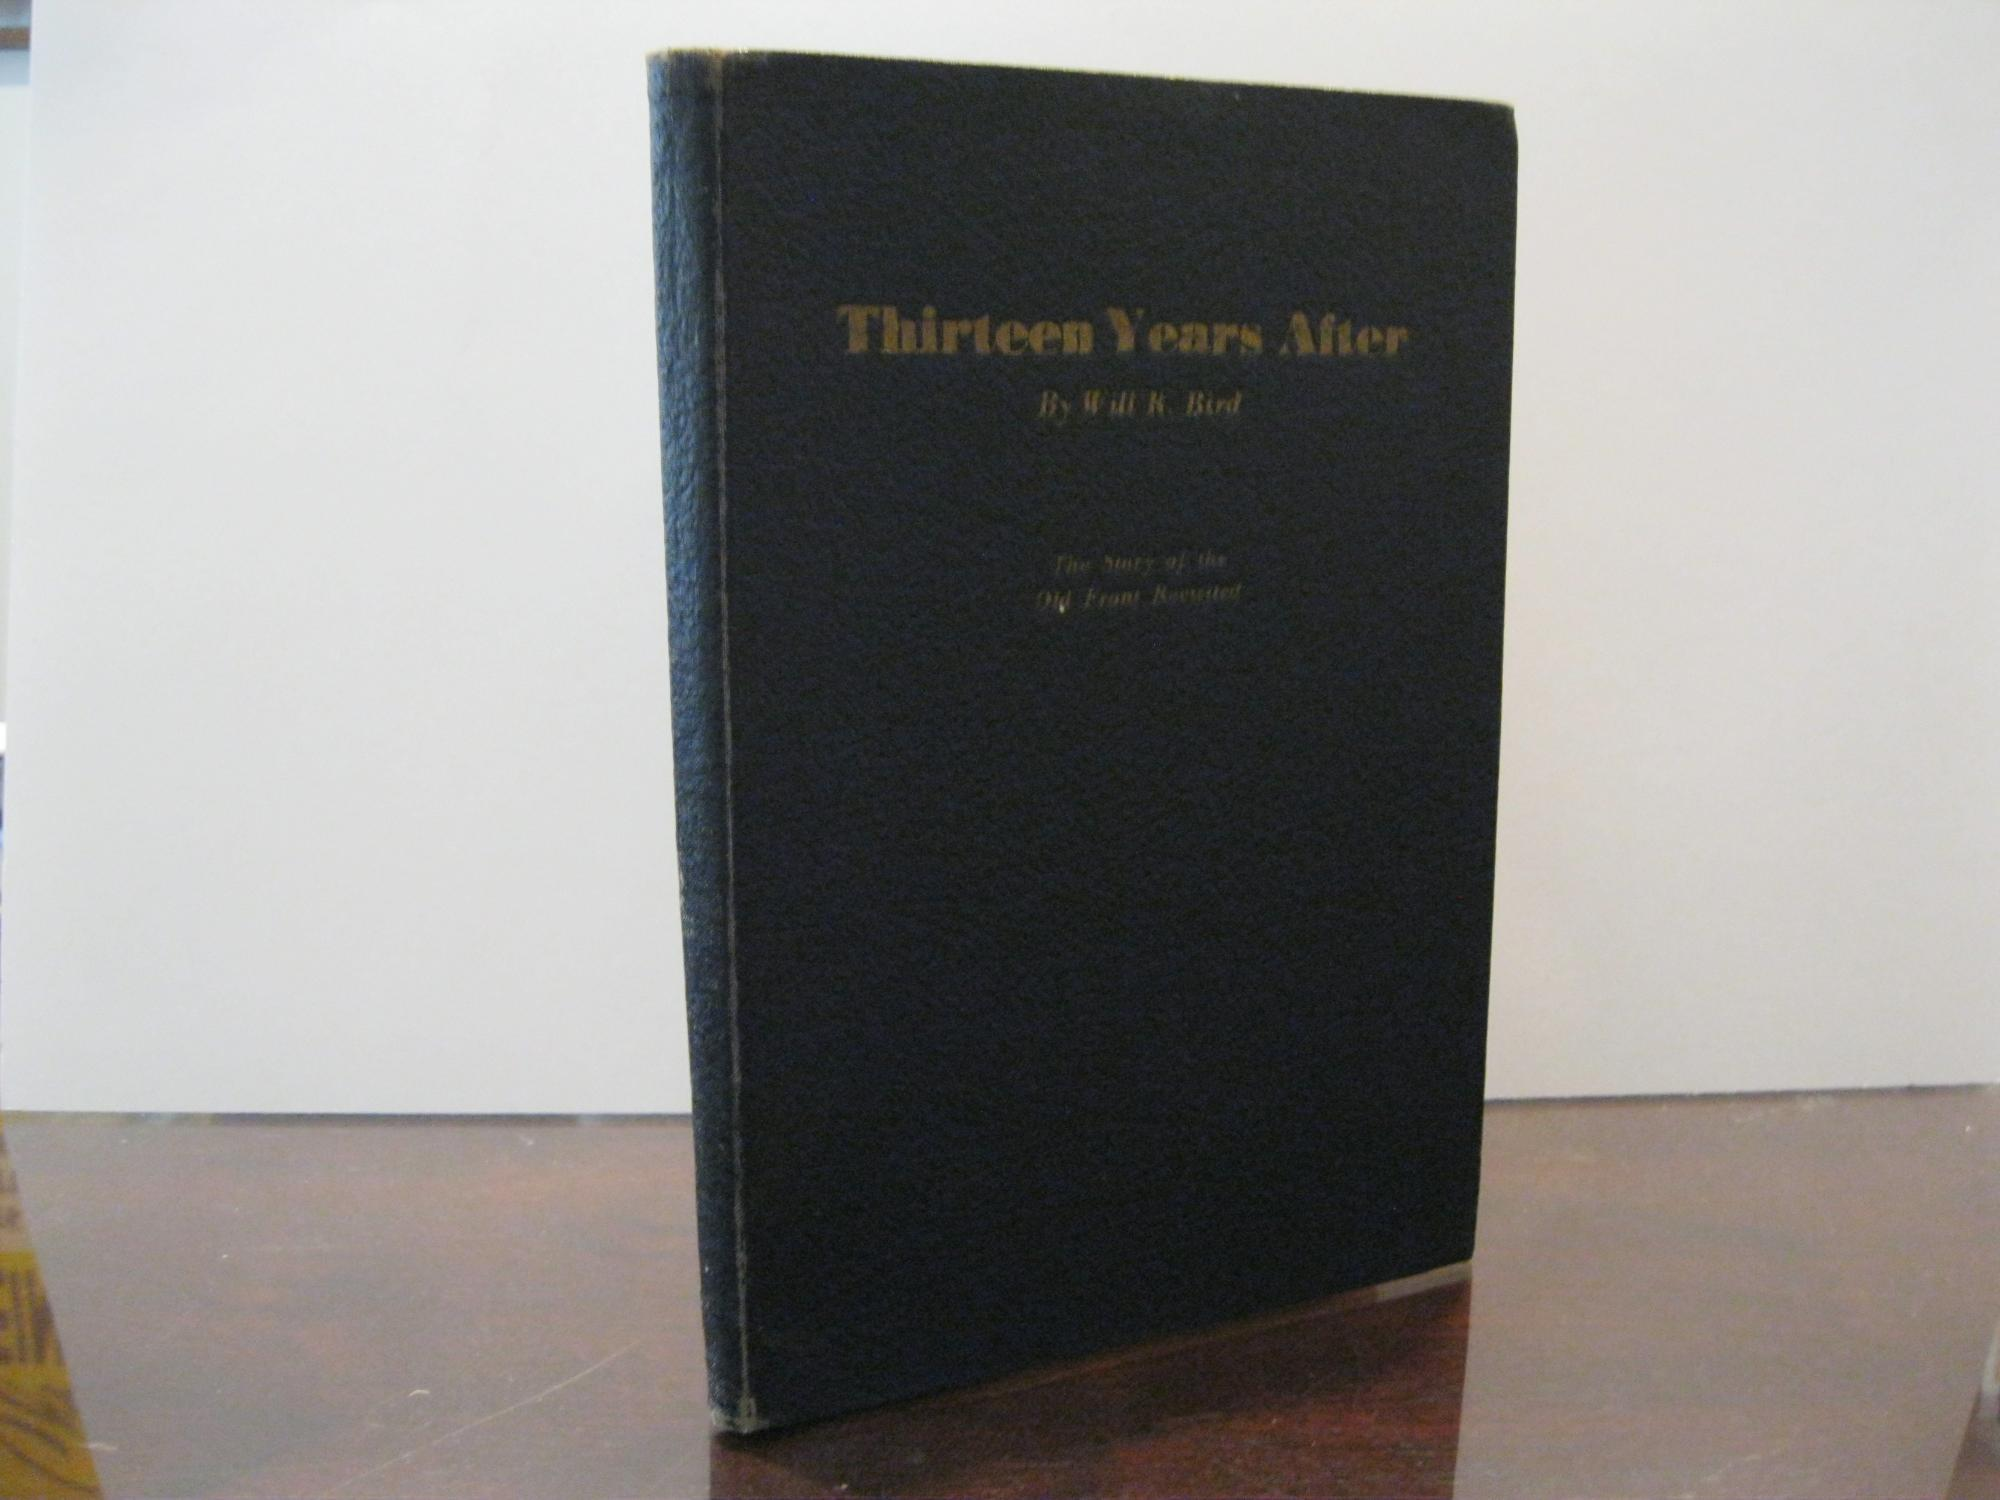 THIRTEEN_YEARS_AFTER_THE_STORY_OF_THE_OLD_FRONT_REVISITED_BIRD,_WILL_[Very_Good]_[Hardcover]